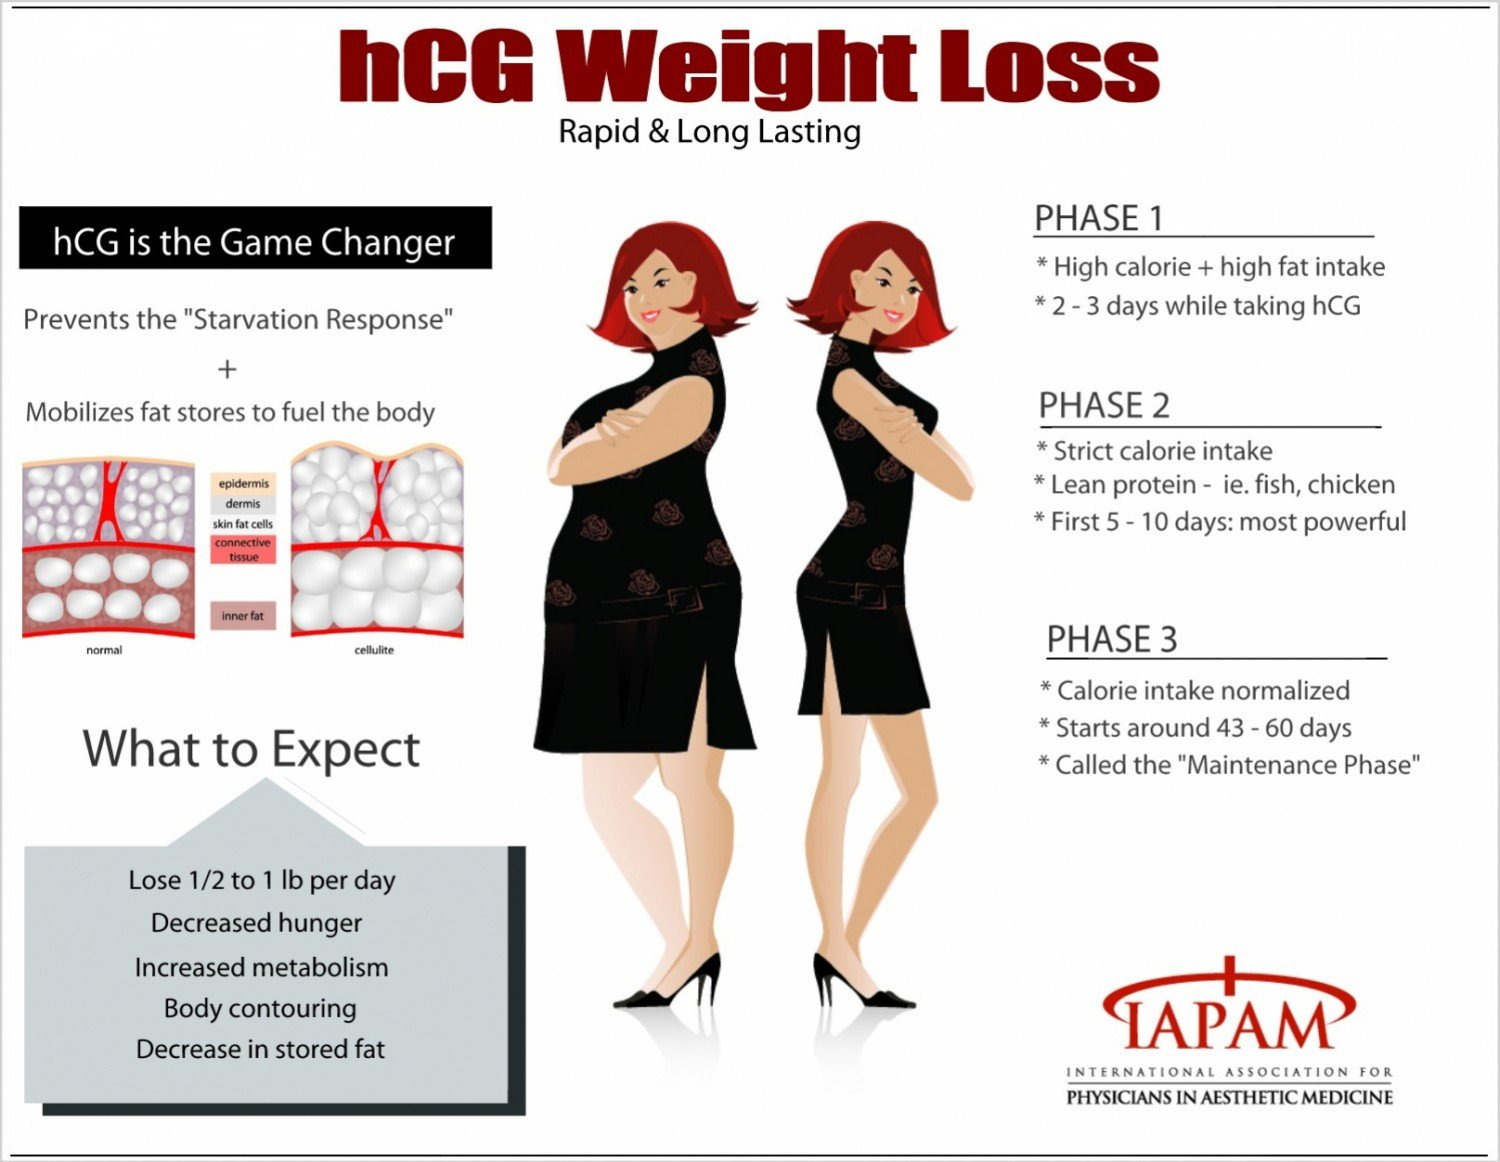 INFOGRAPH: STAGES OF WEIGHT LOSS WITH HCG